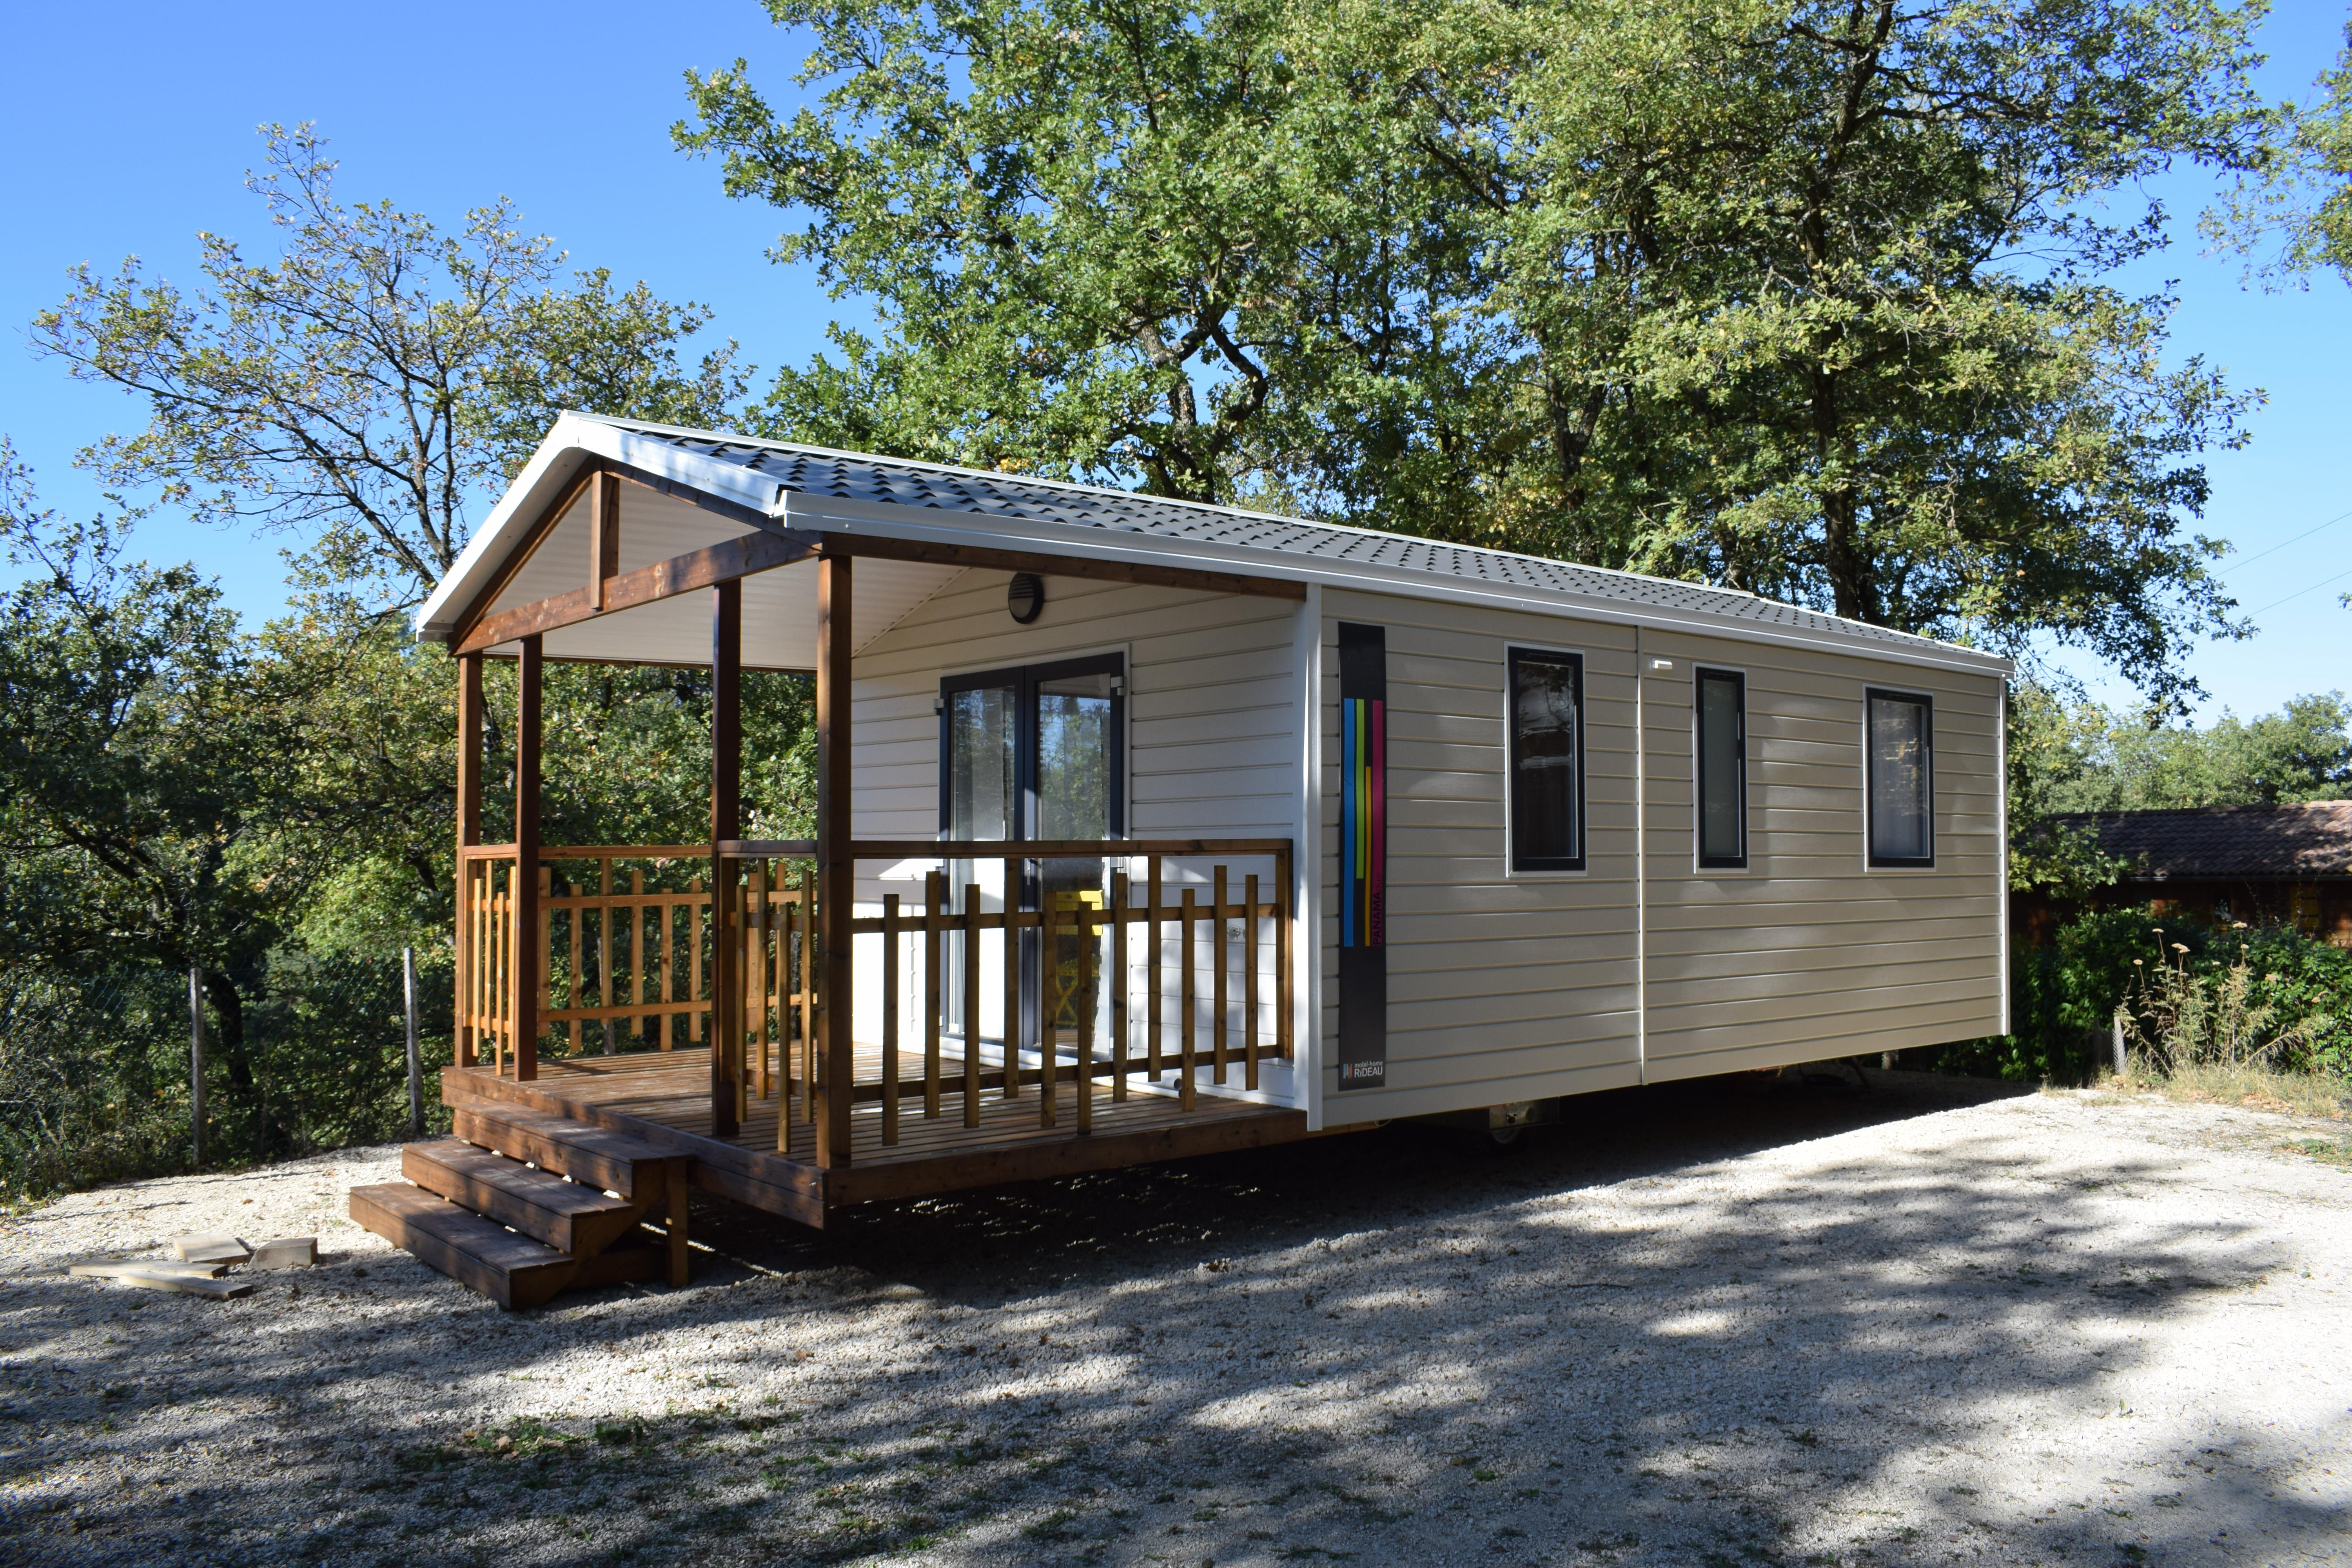 Mobil home 2 rooms 24m², covered terrace (2019) : 3 PERSONS + 1 BABY (under 3 years old)